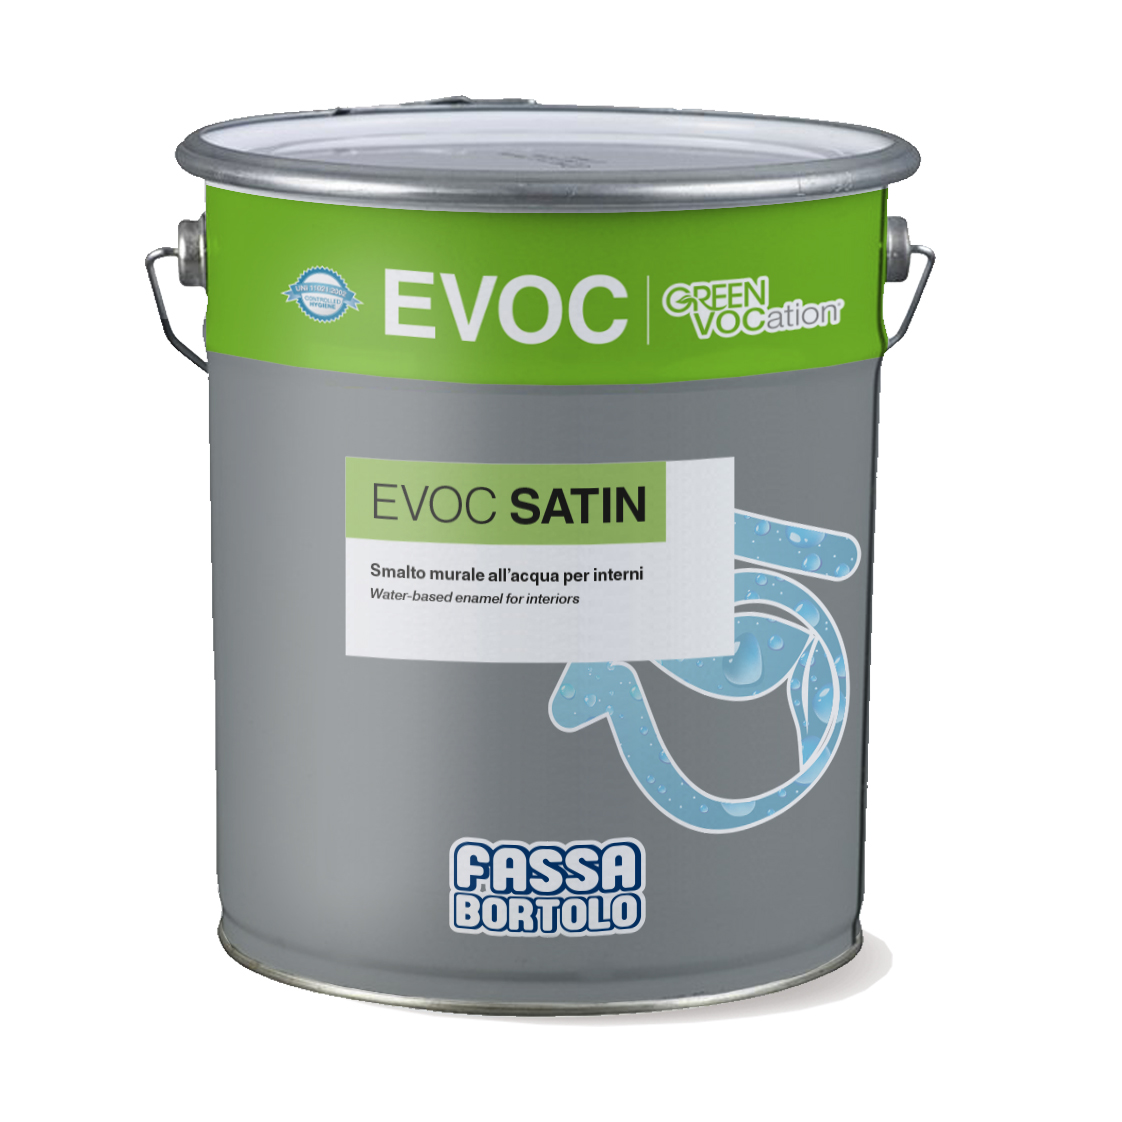 EVOC SATIN: Smalto murale all'acqua satinato per interni